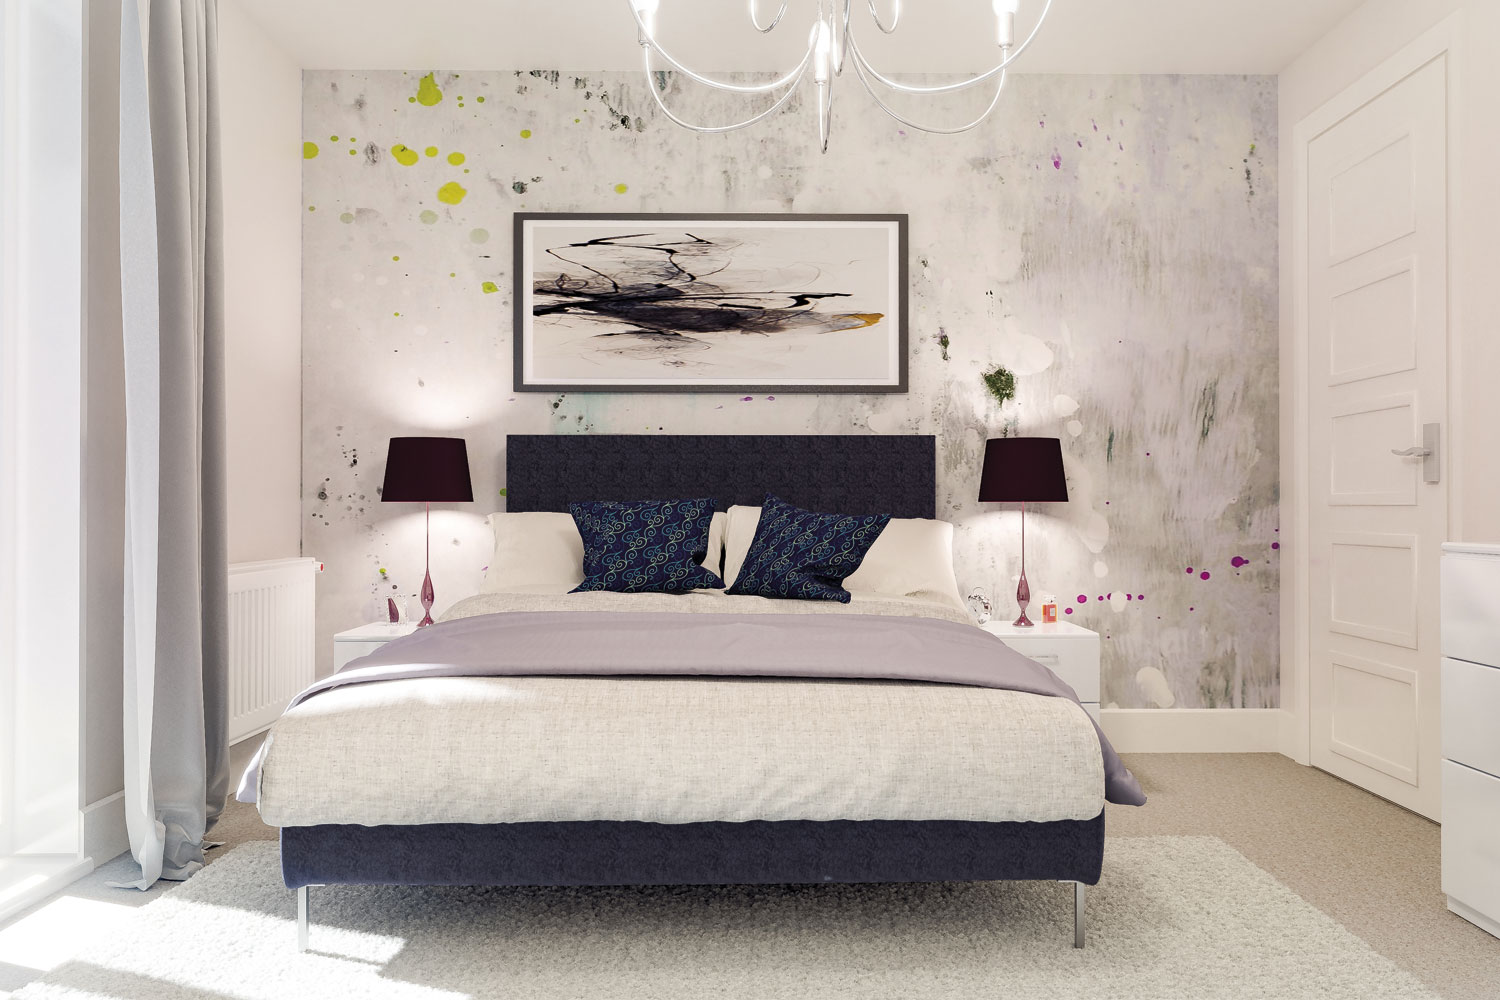 MOH9752_TheHeights_Interior_3.jpg